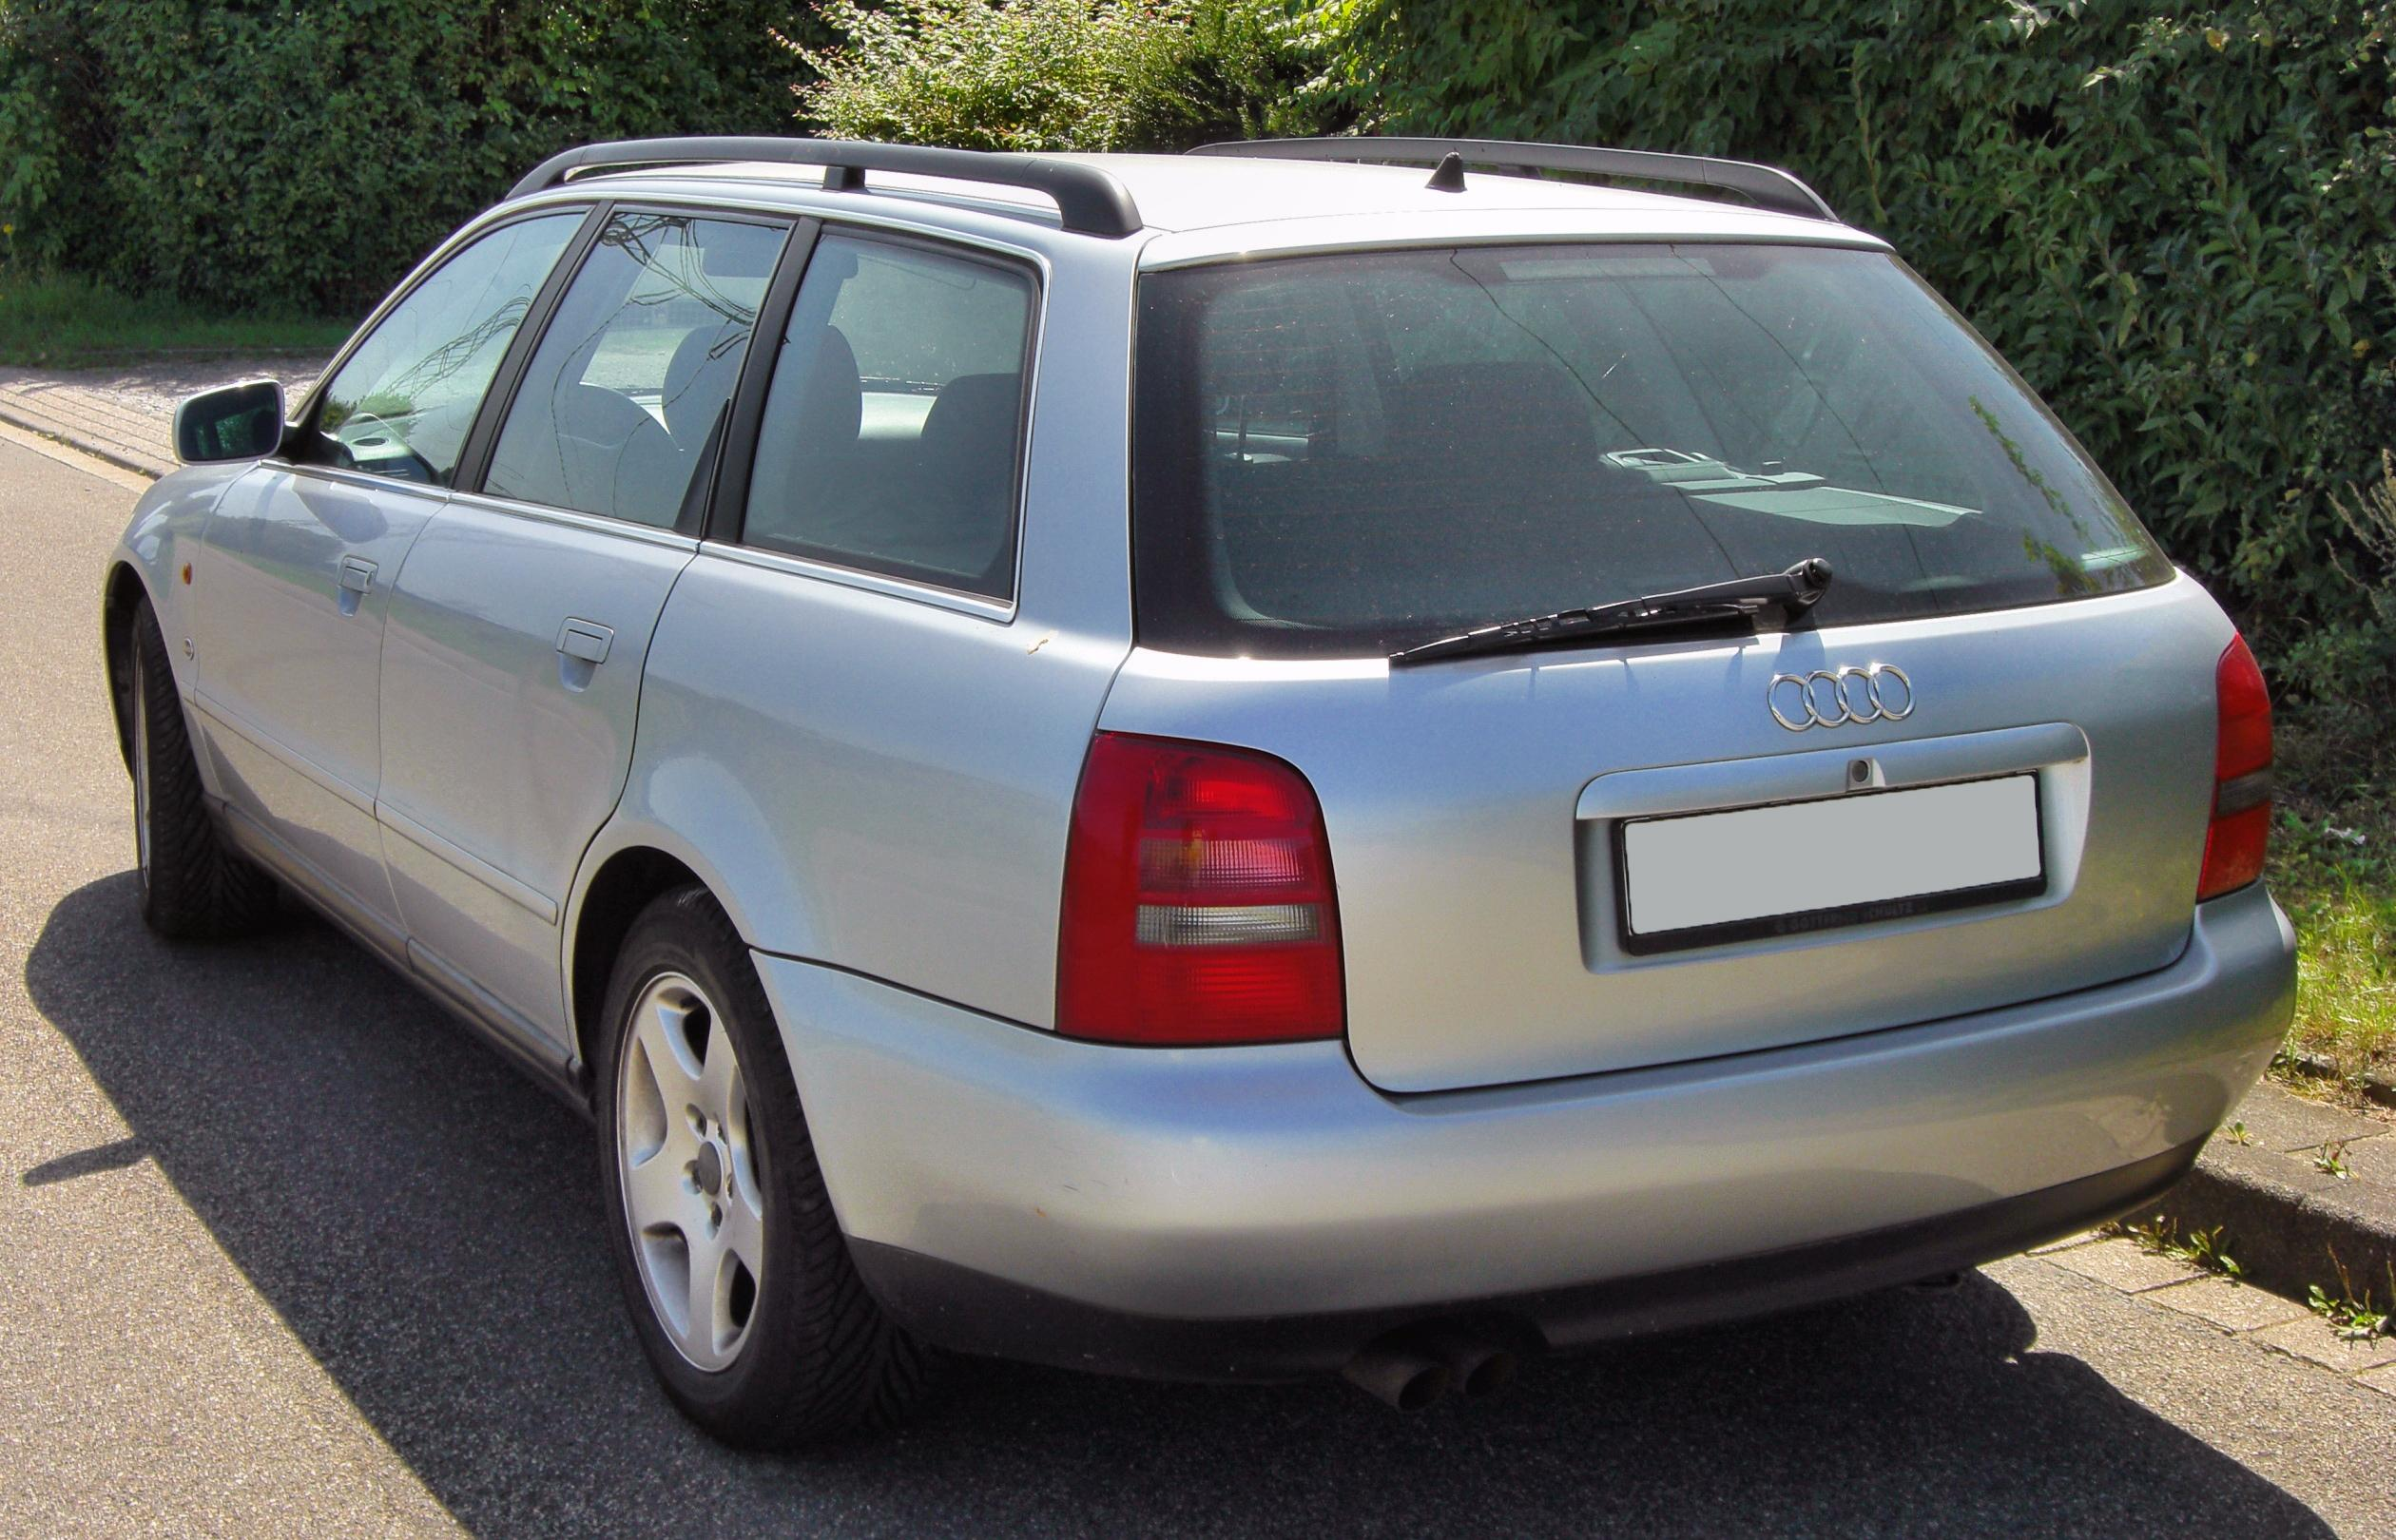 1997 Audi A4 avant (8d,b5) - pictures, information and ...